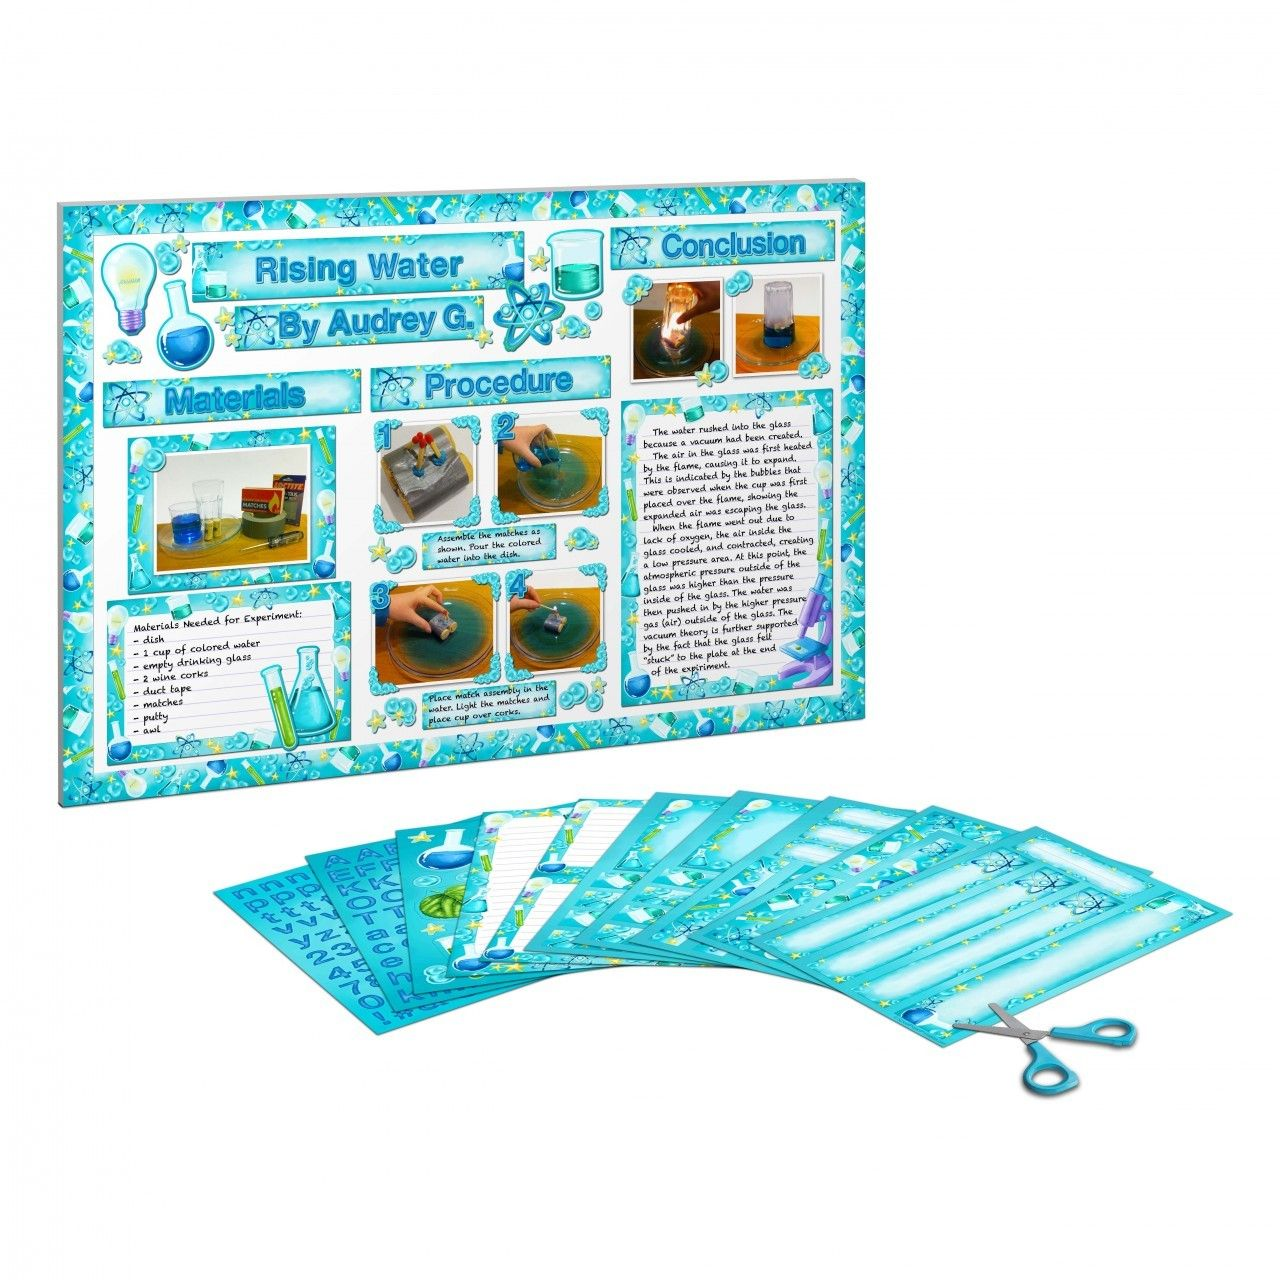 Printable Decorations For A Small Science Fair Display Board 2 95